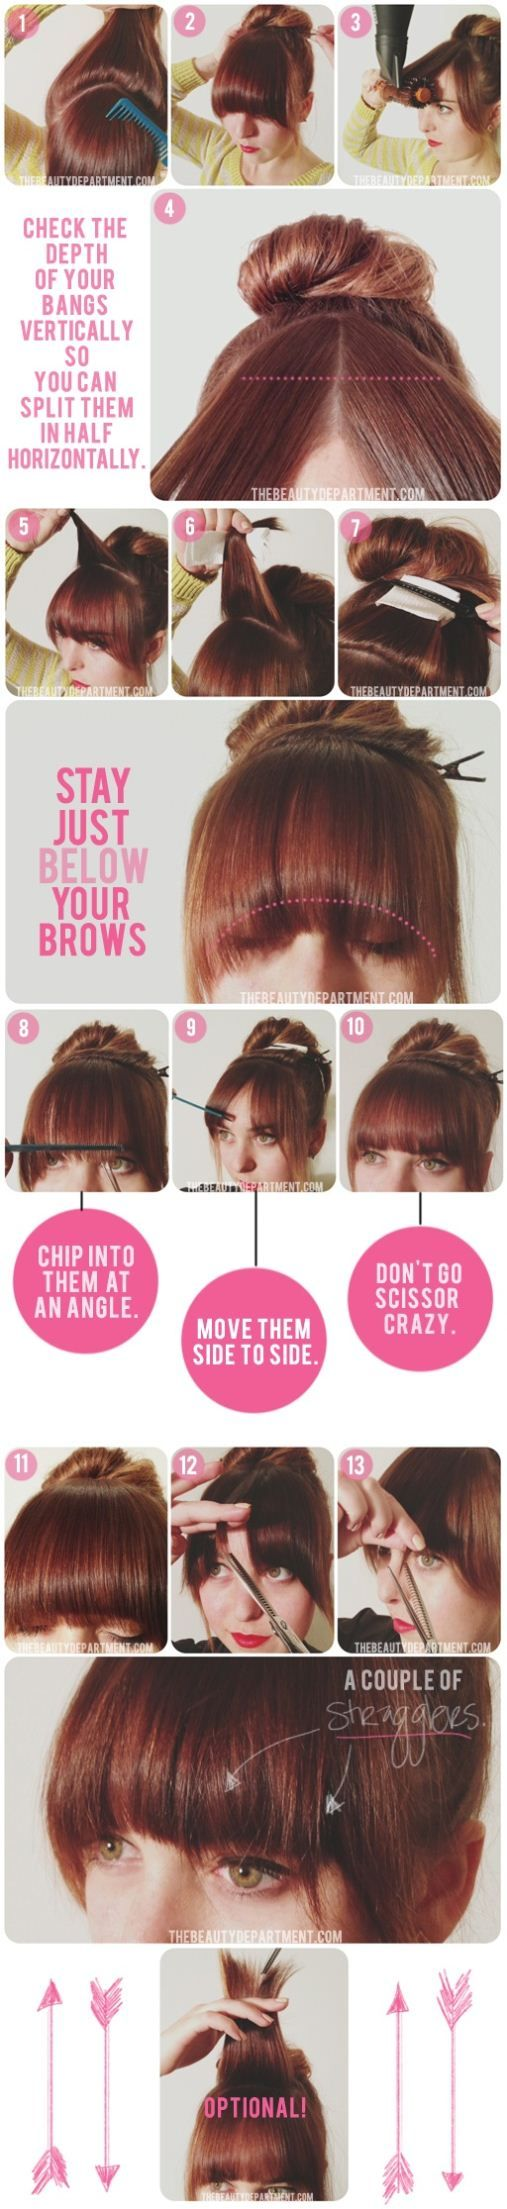 "Here ya go everyone who cuts your own bangs. Quit f'ing them up! ""Now I know how…"